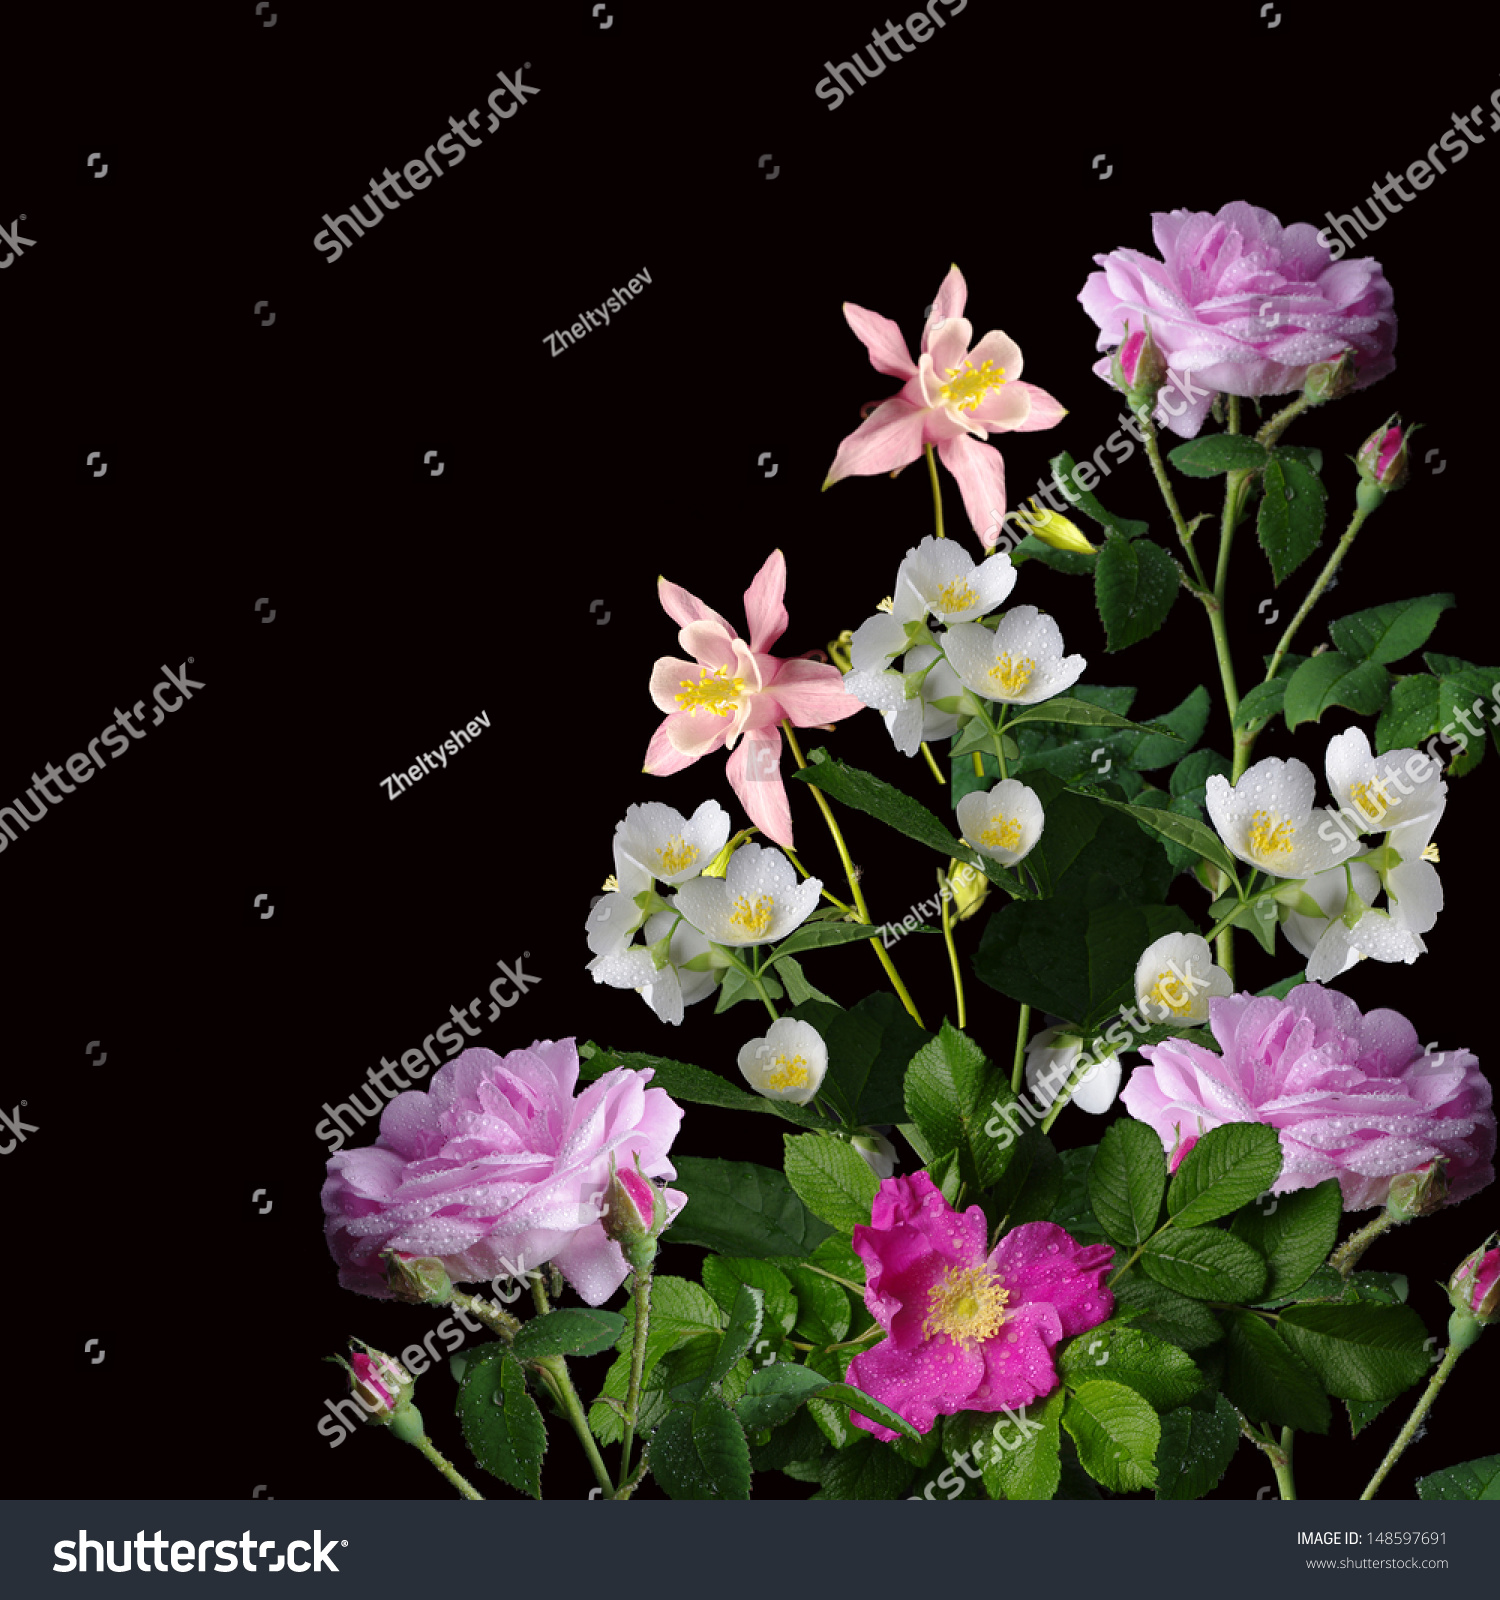 Spring flowers on black background roses stock photo royalty free spring flowers on black background roses wild rose lily of valley jasmine izmirmasajfo